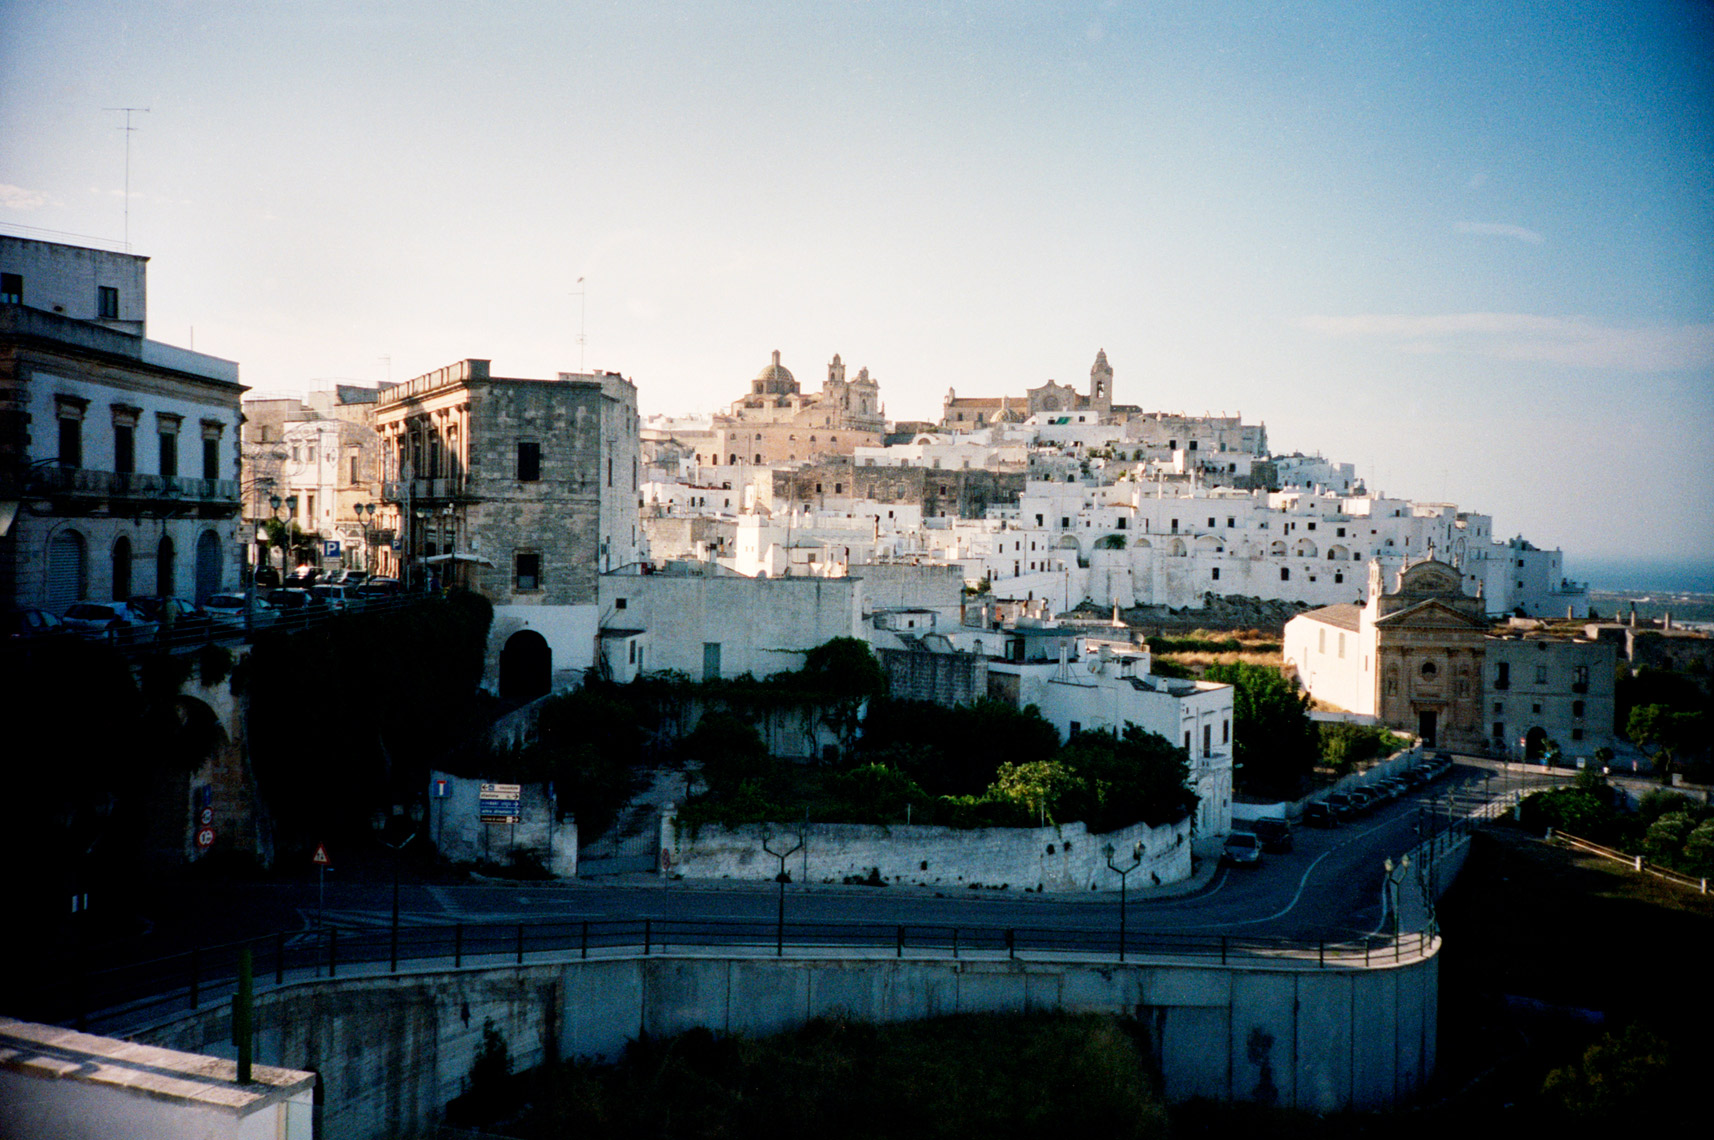 Ostuni, The White City, Puglia, Italy, Webb Chappell travel photography